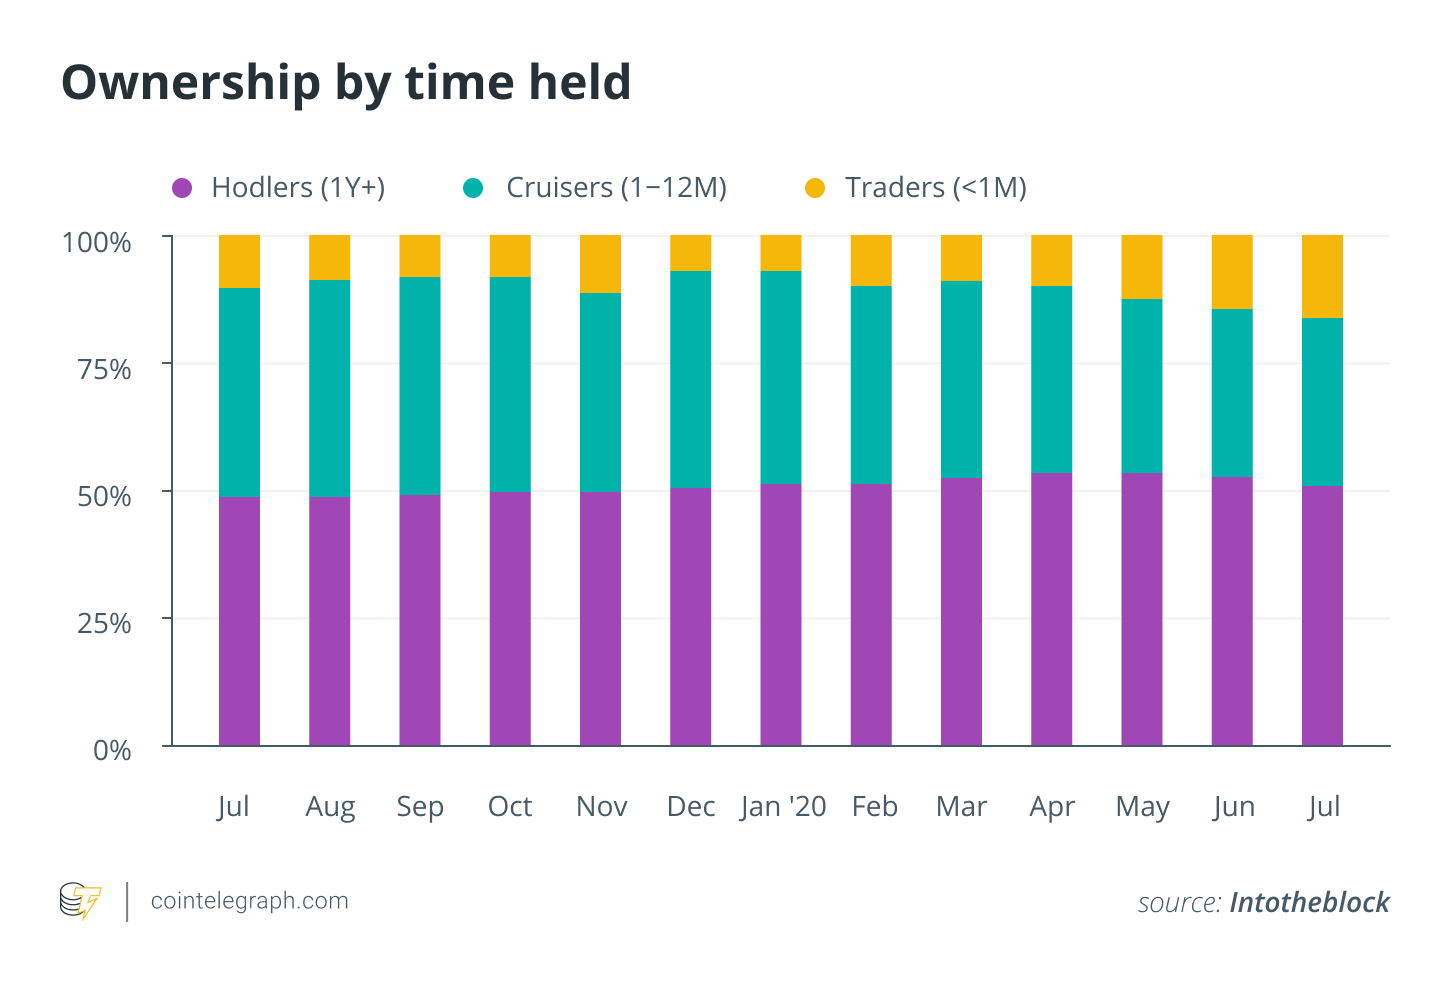 Ownership by time held